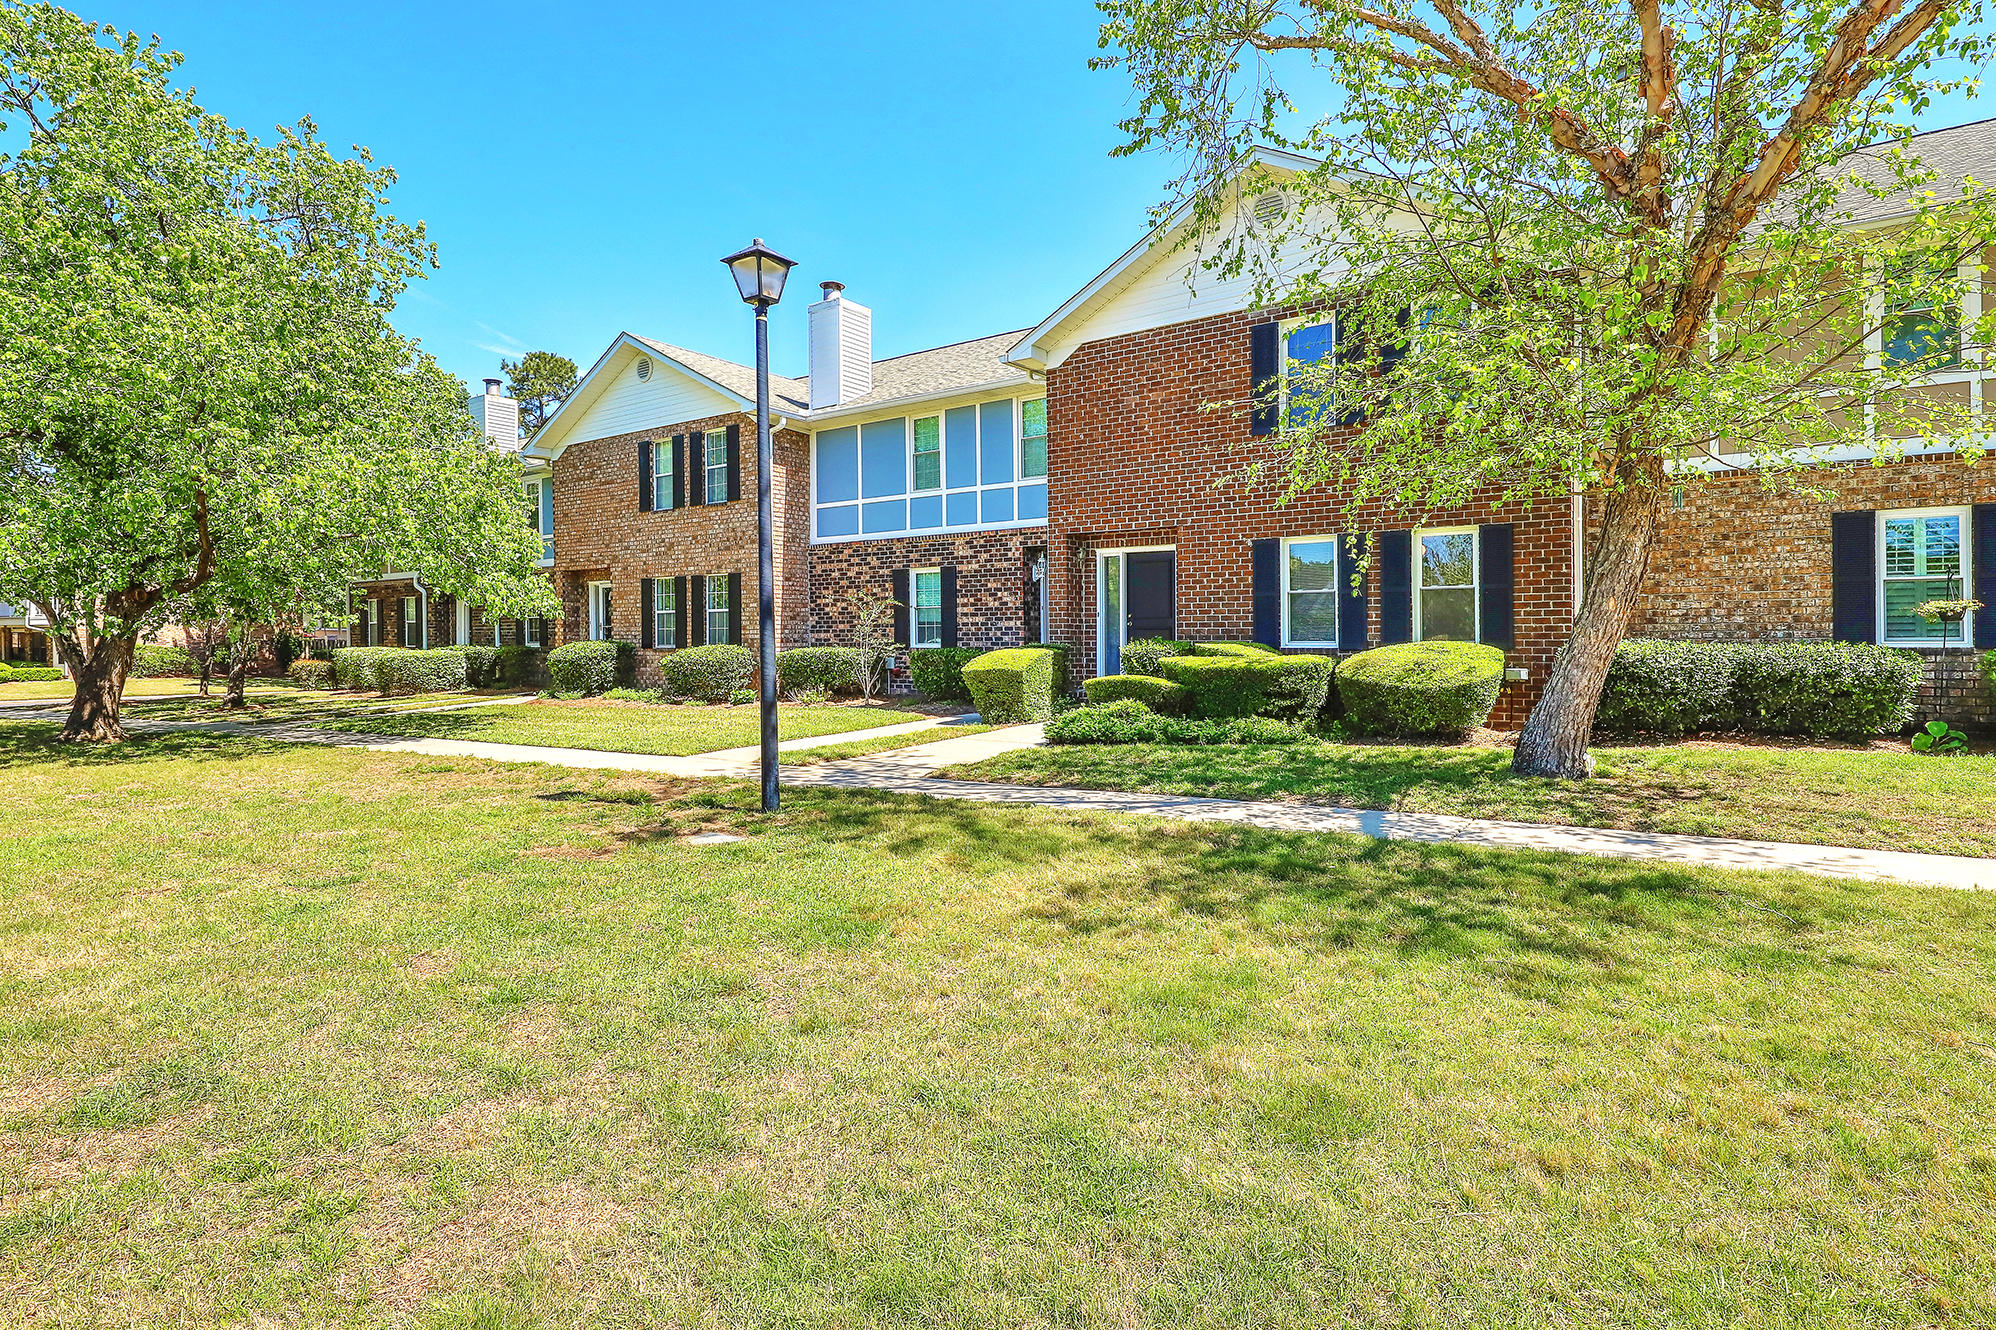 Old Towne Villas Homes For Sale - 2921 Cathedral, Charleston, SC - 34